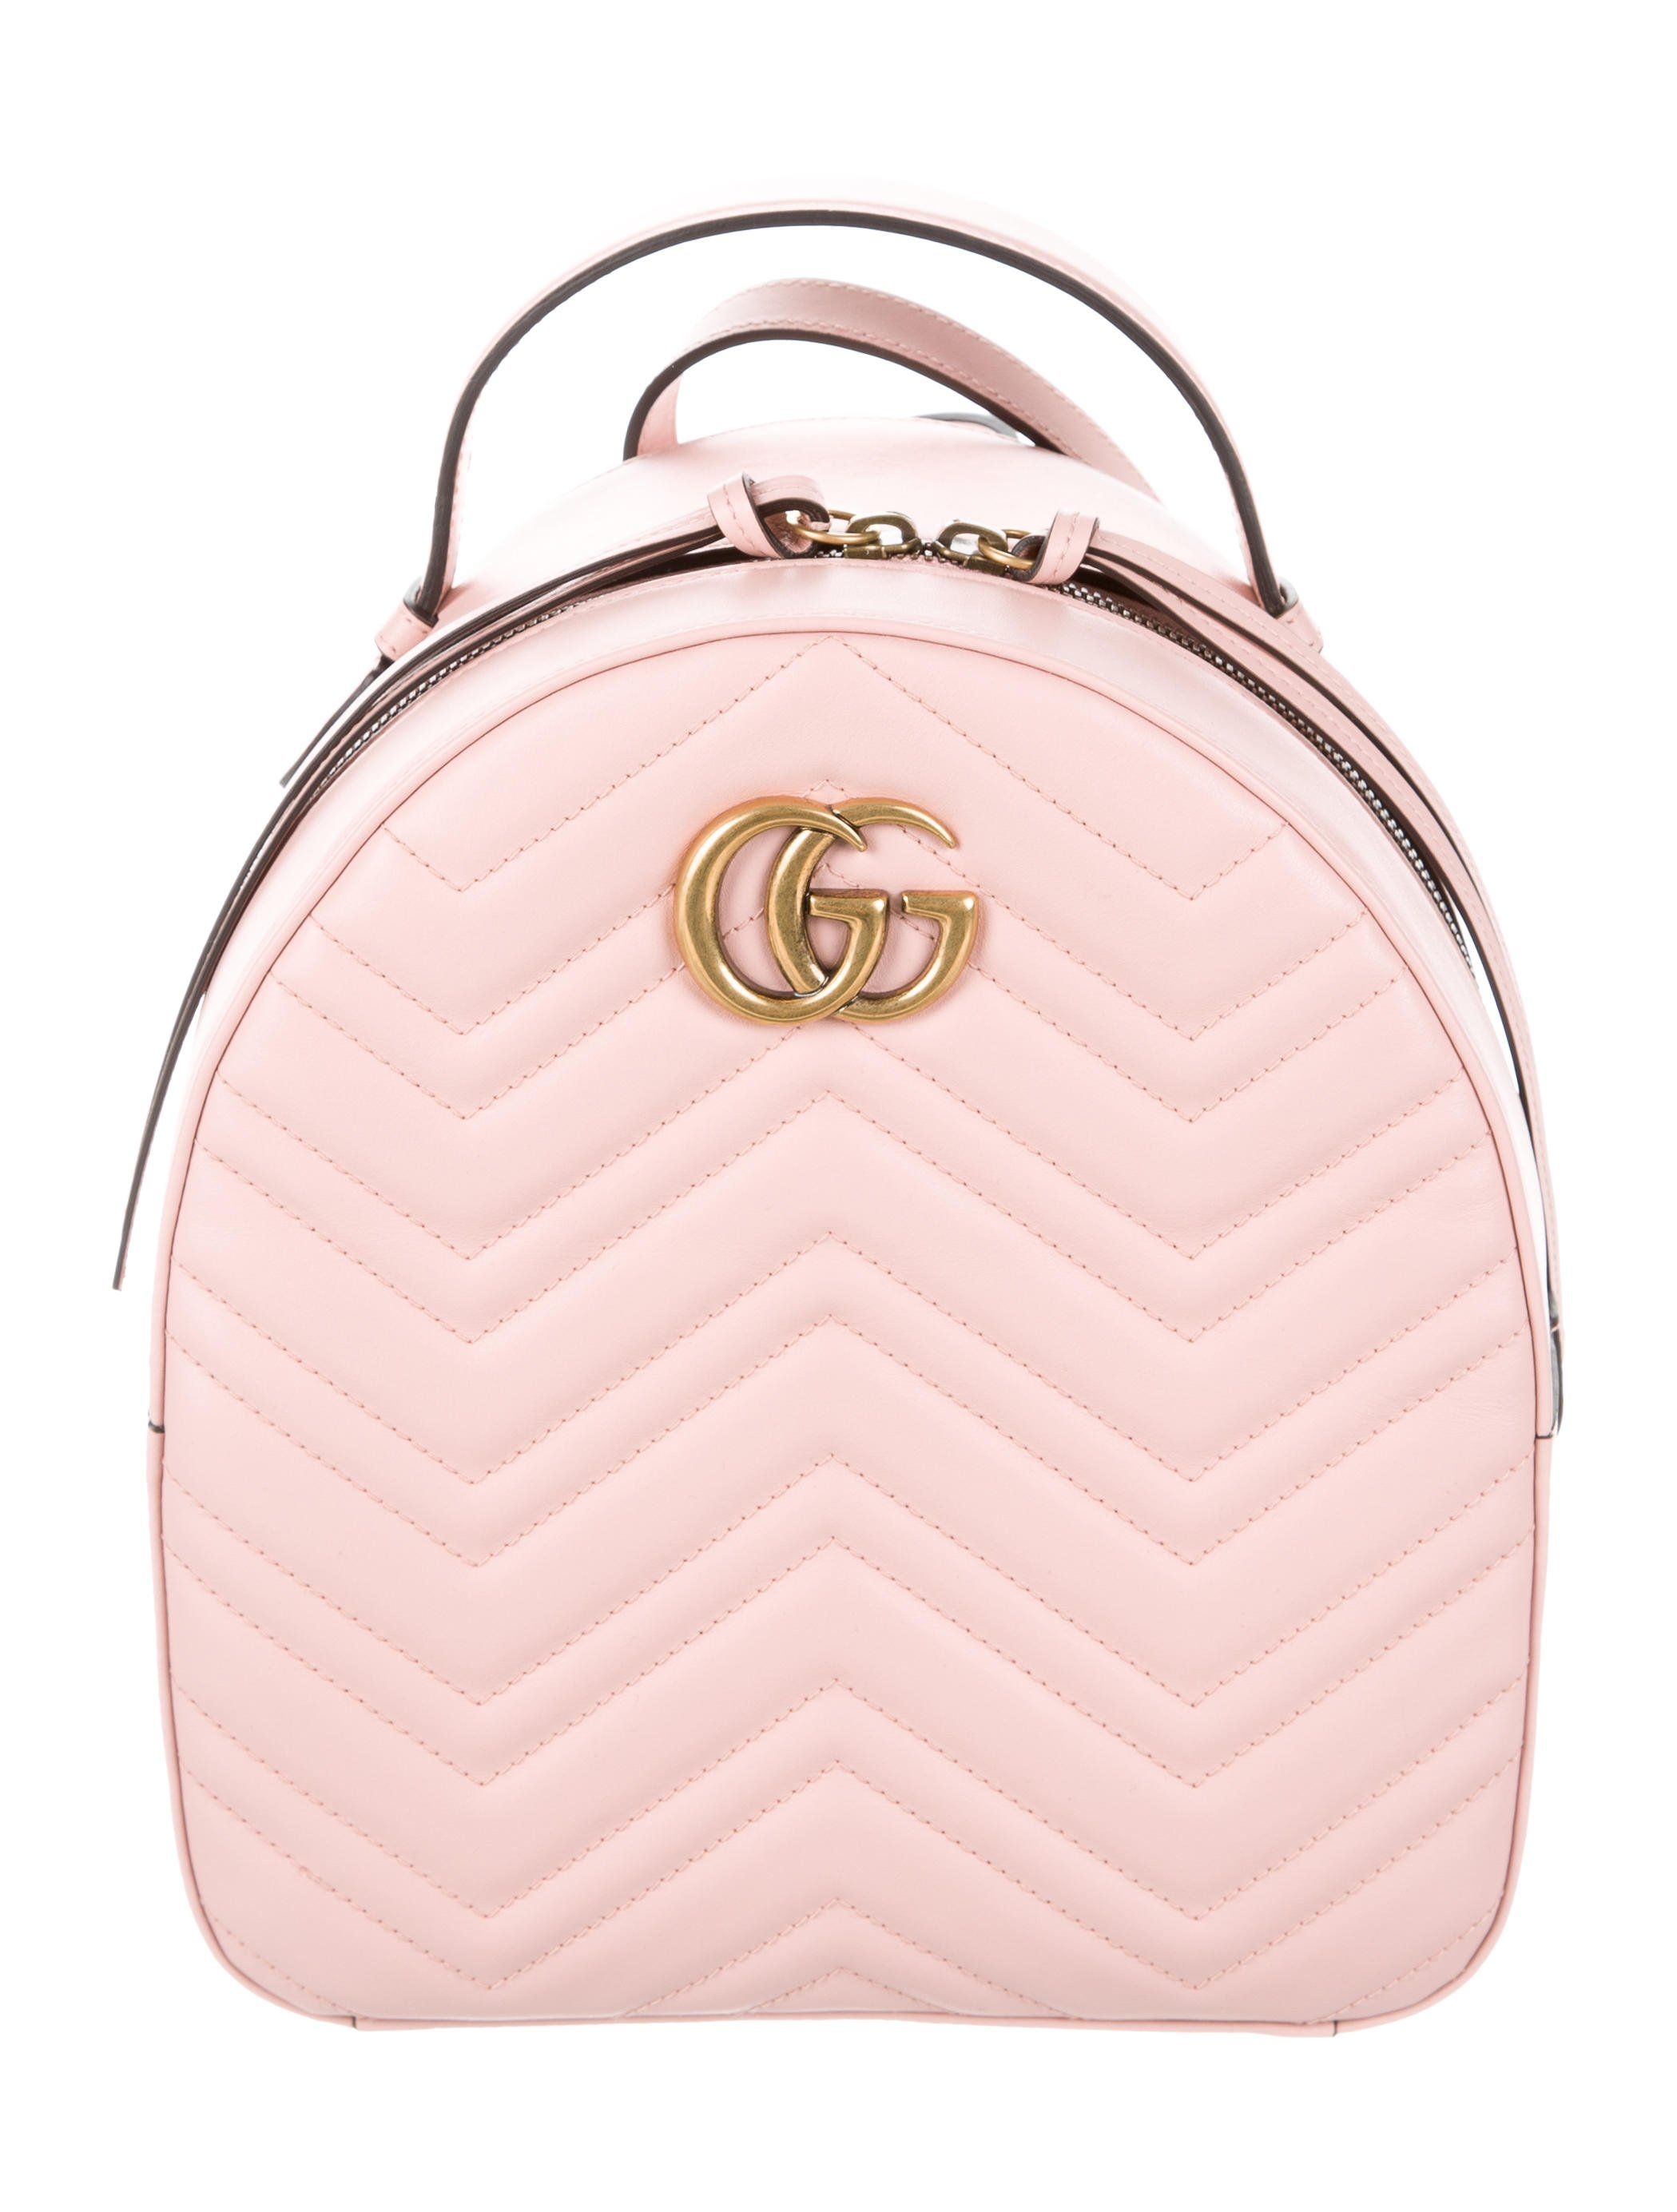 b58c6e1c550 GG Marmont Matelassé Leather Backpack in 2019